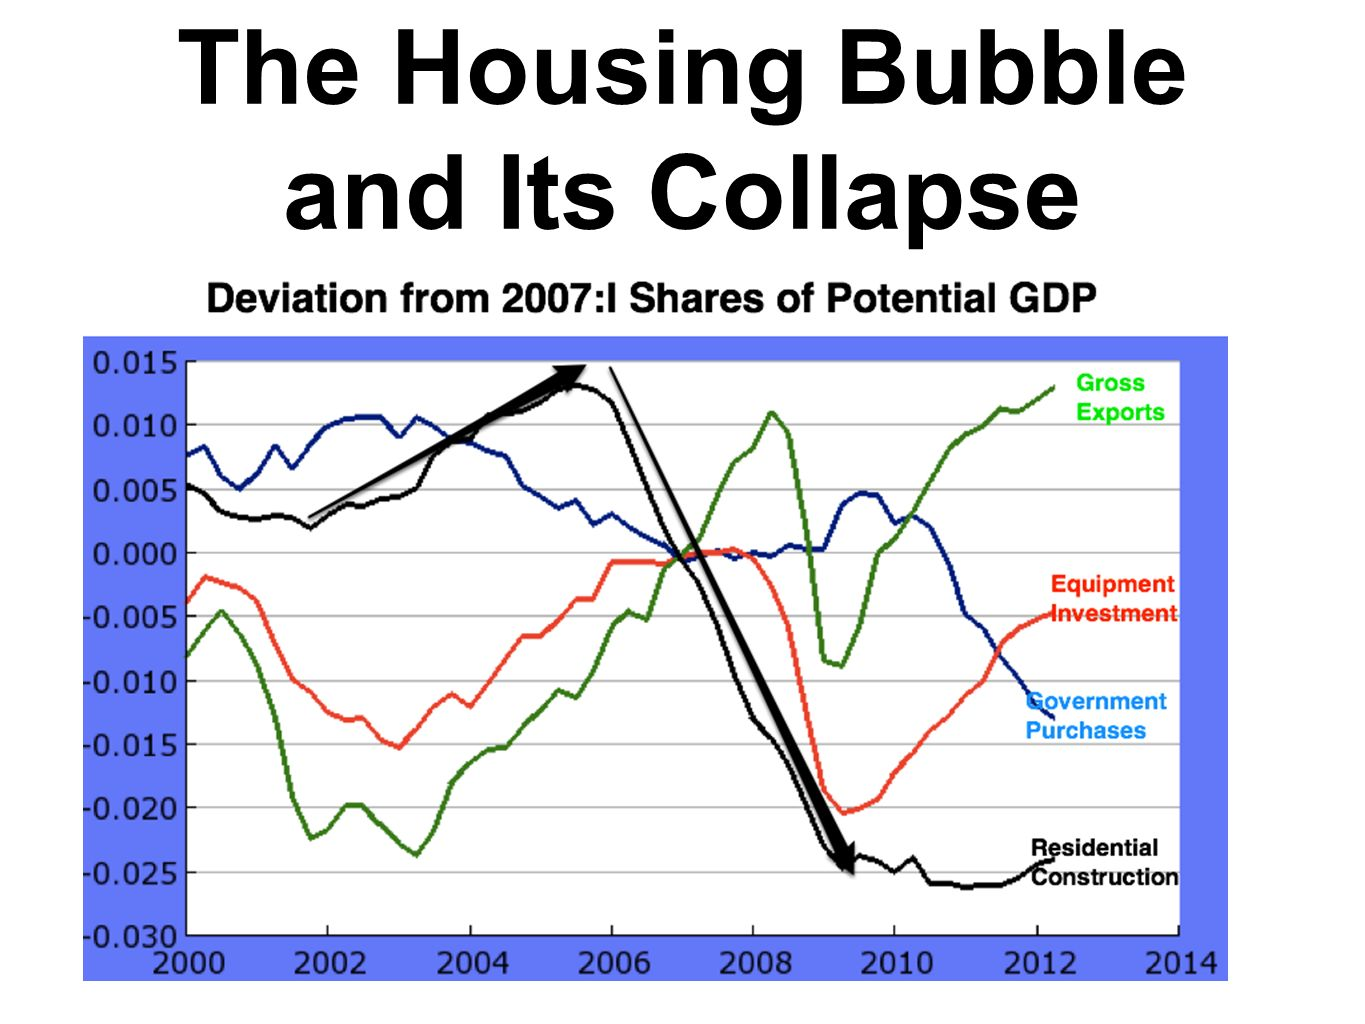 The Housing Bubble and Its Collapse